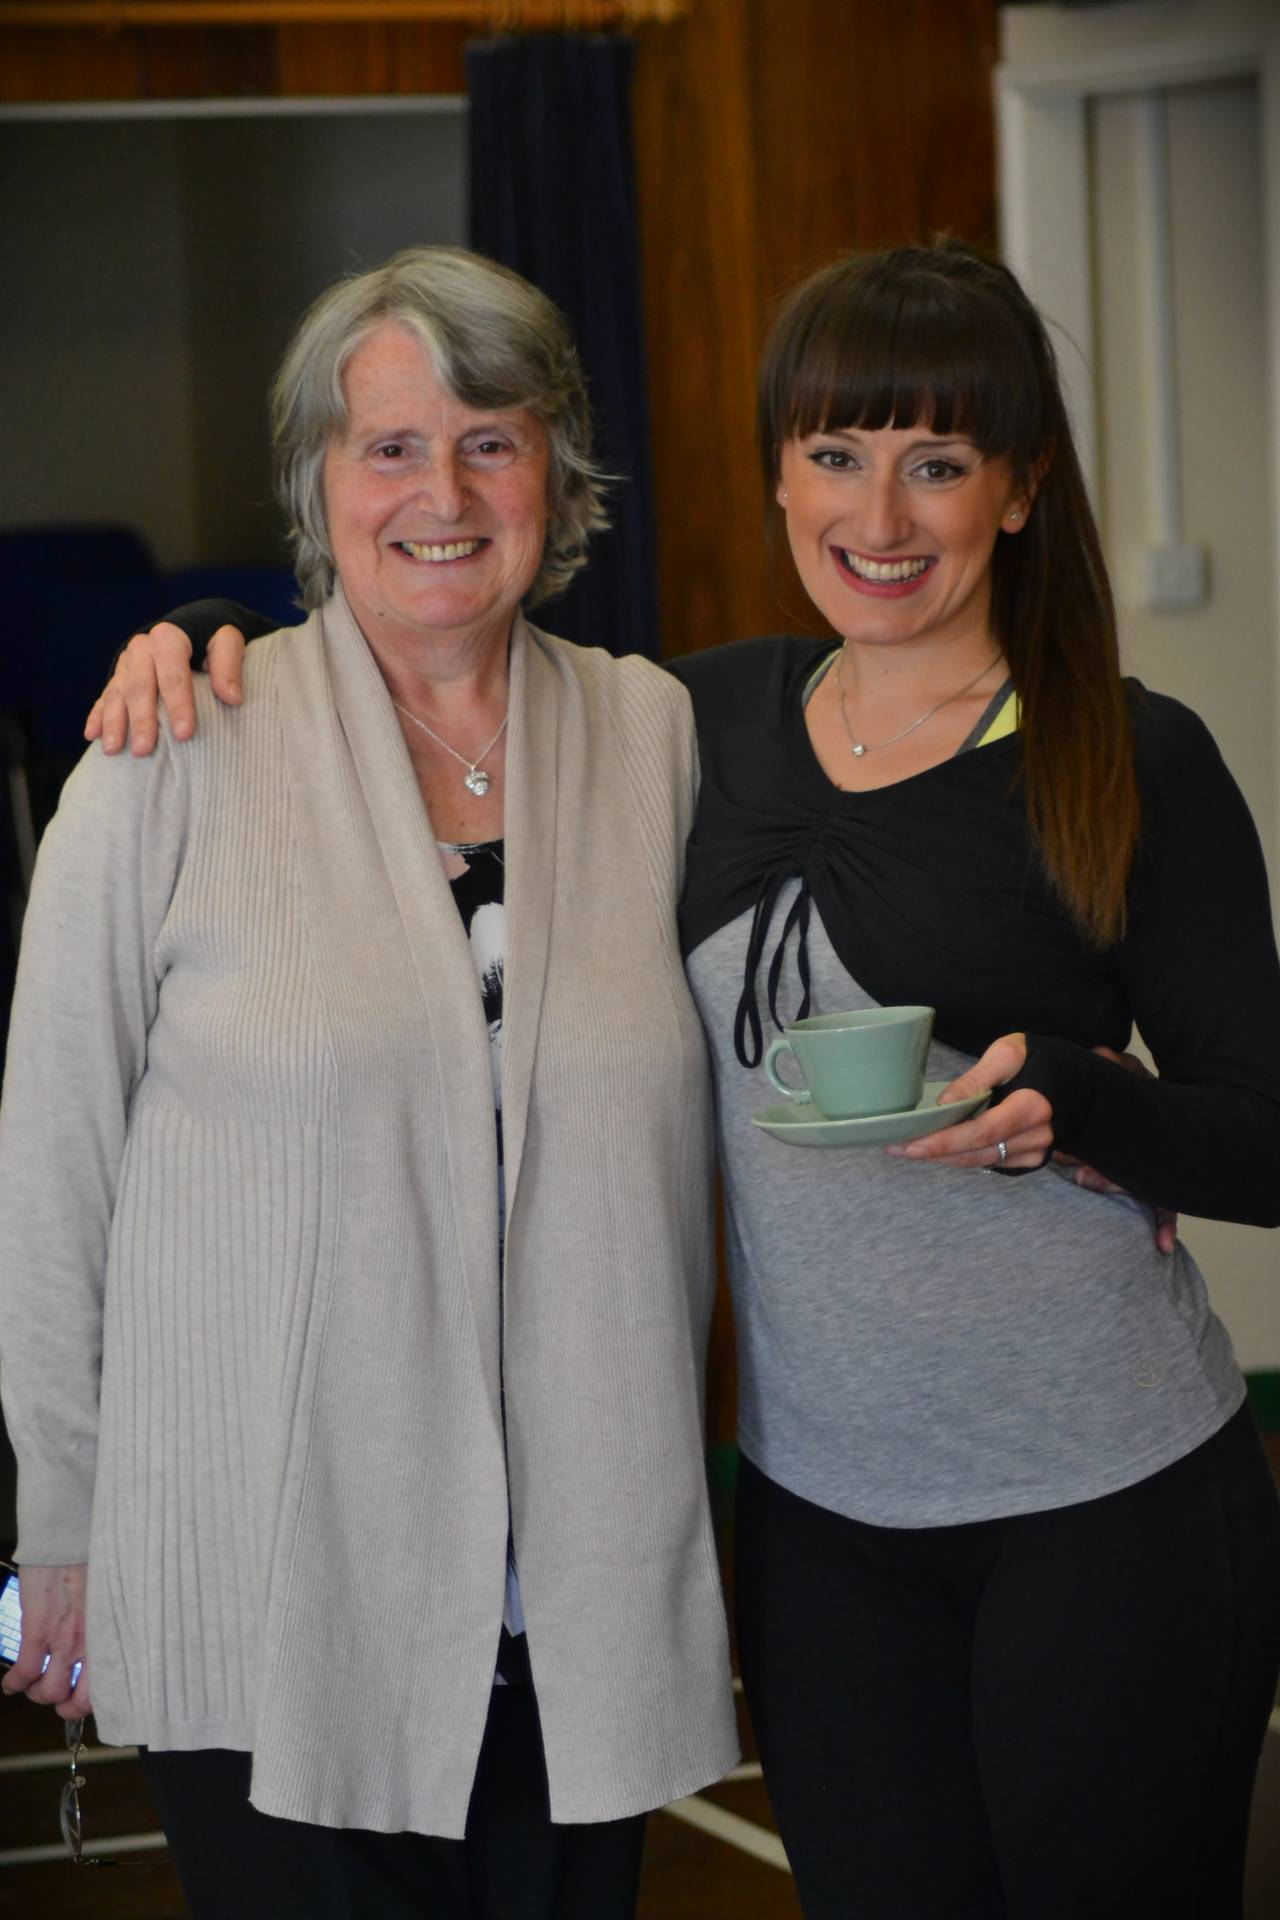 Yvette with her Mum